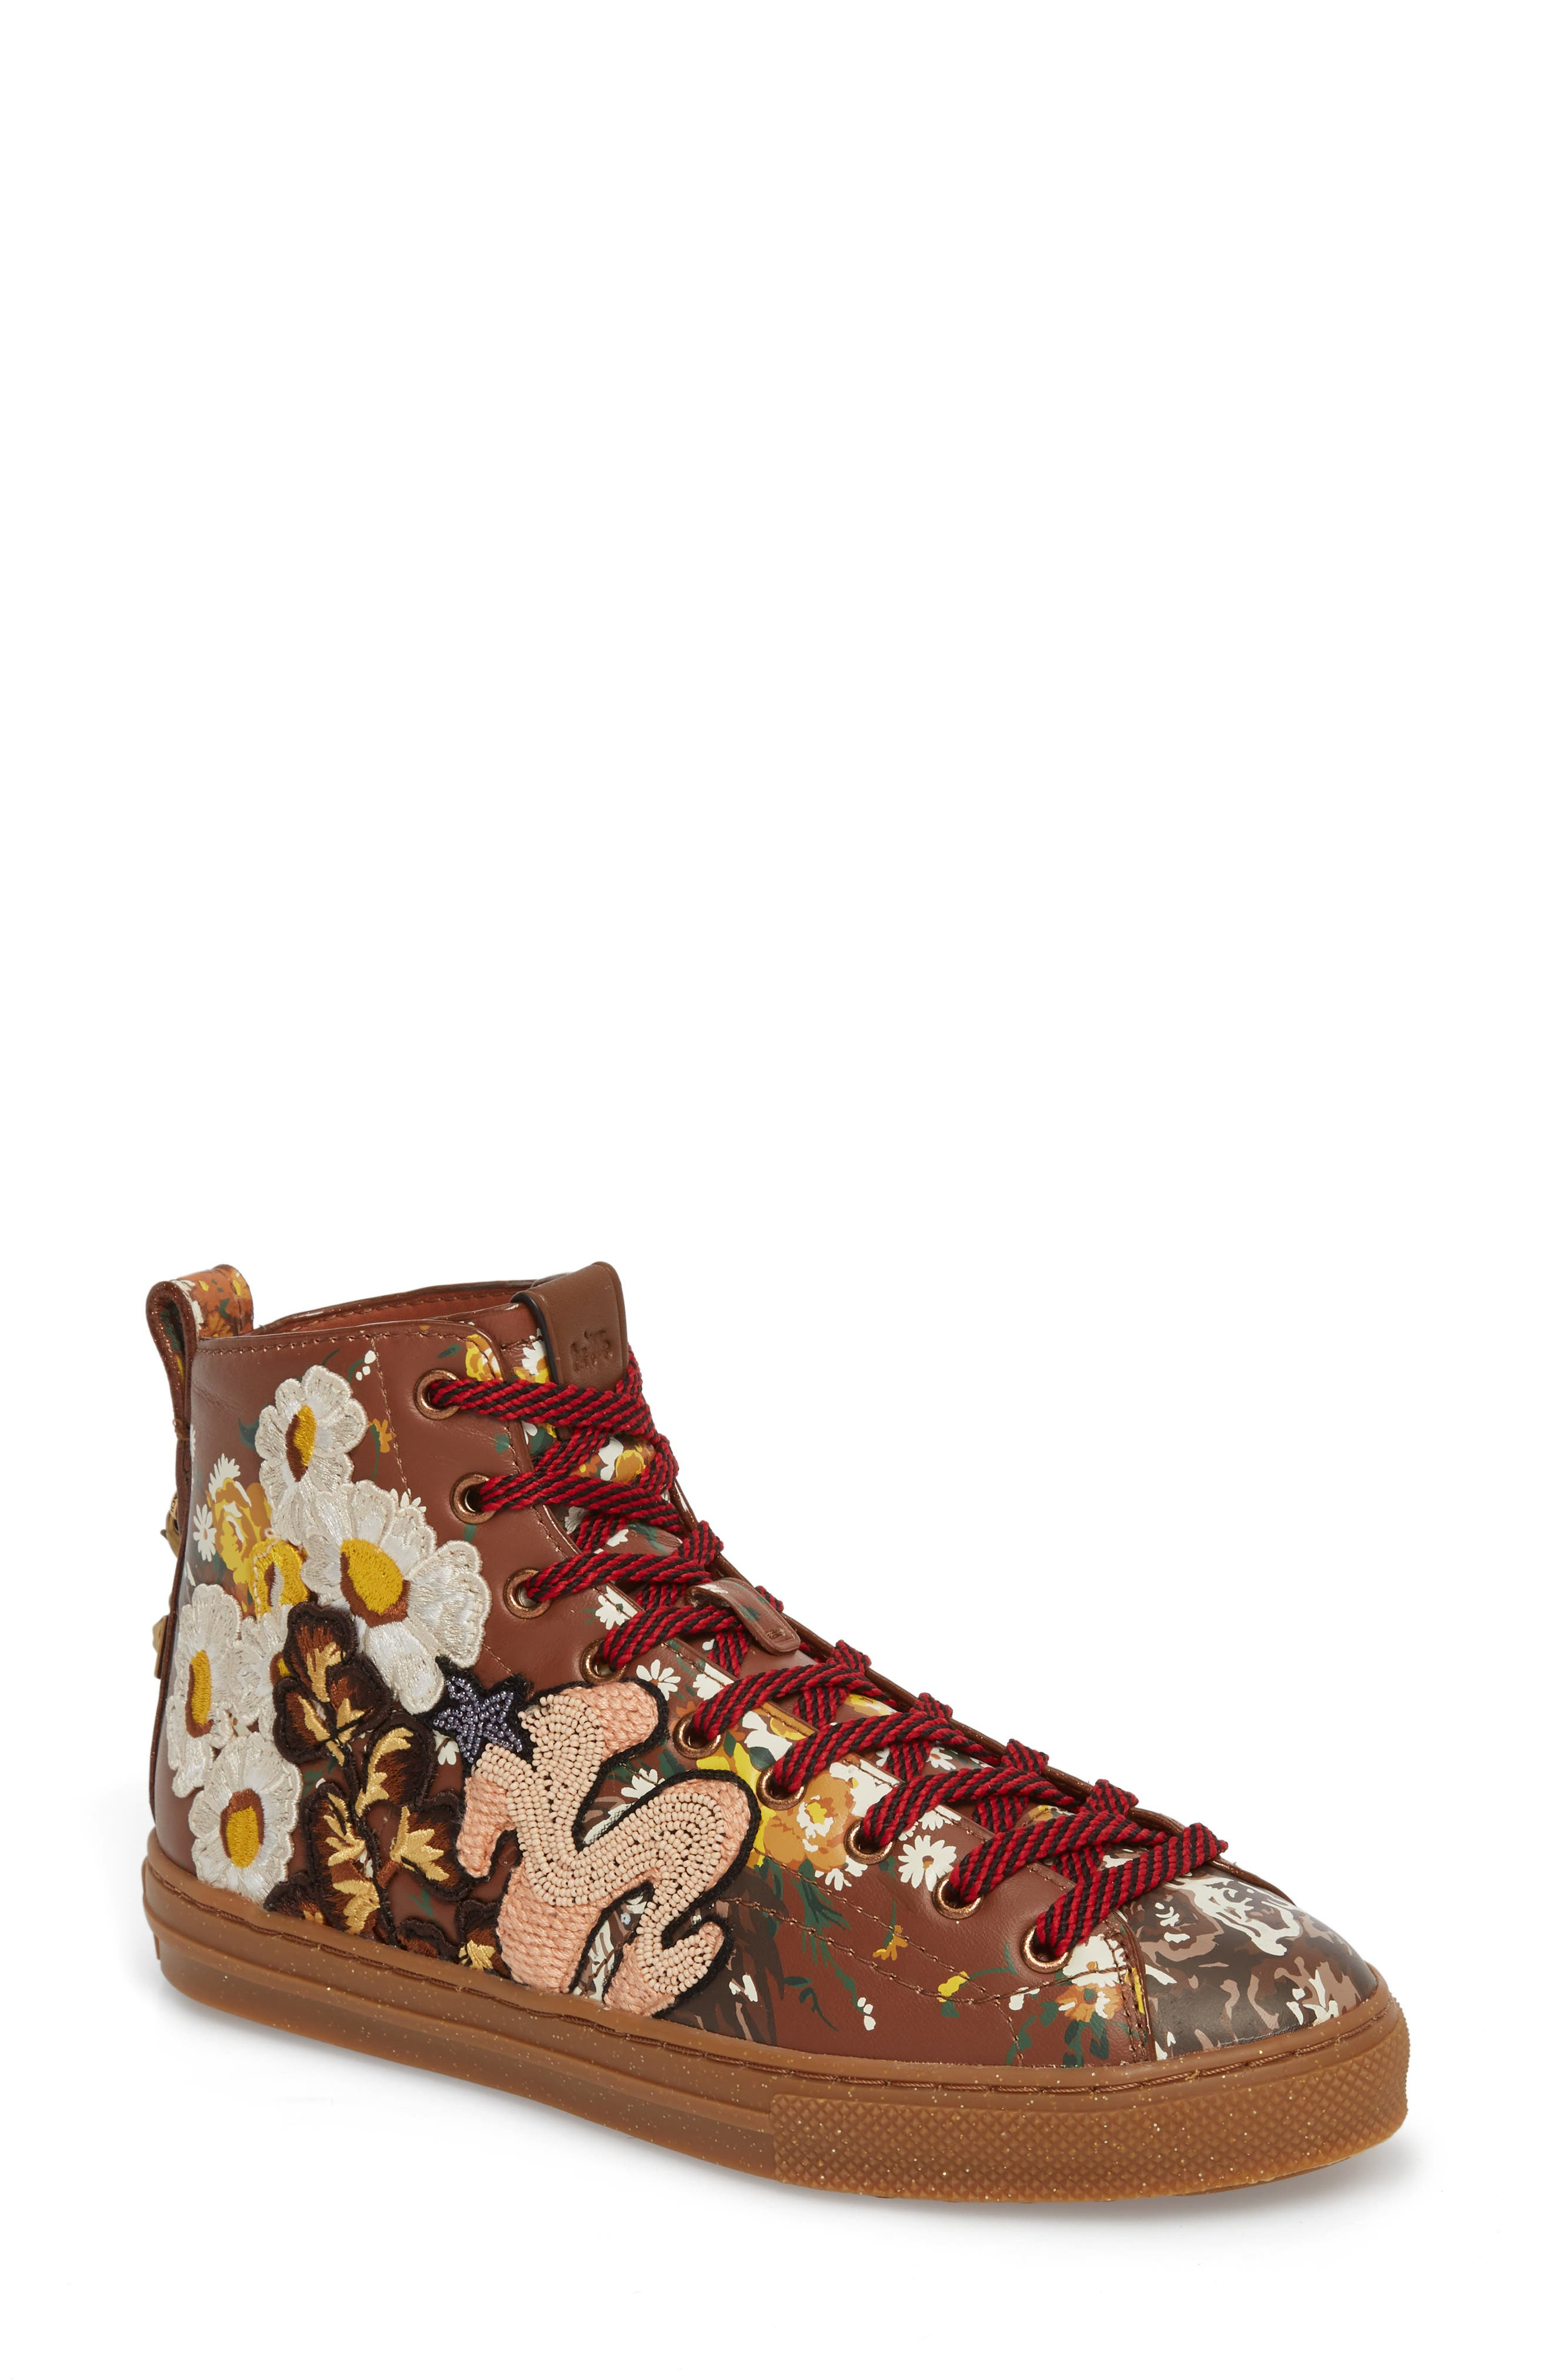 Flower Patch High Top Sneaker,                         Main,                         color,